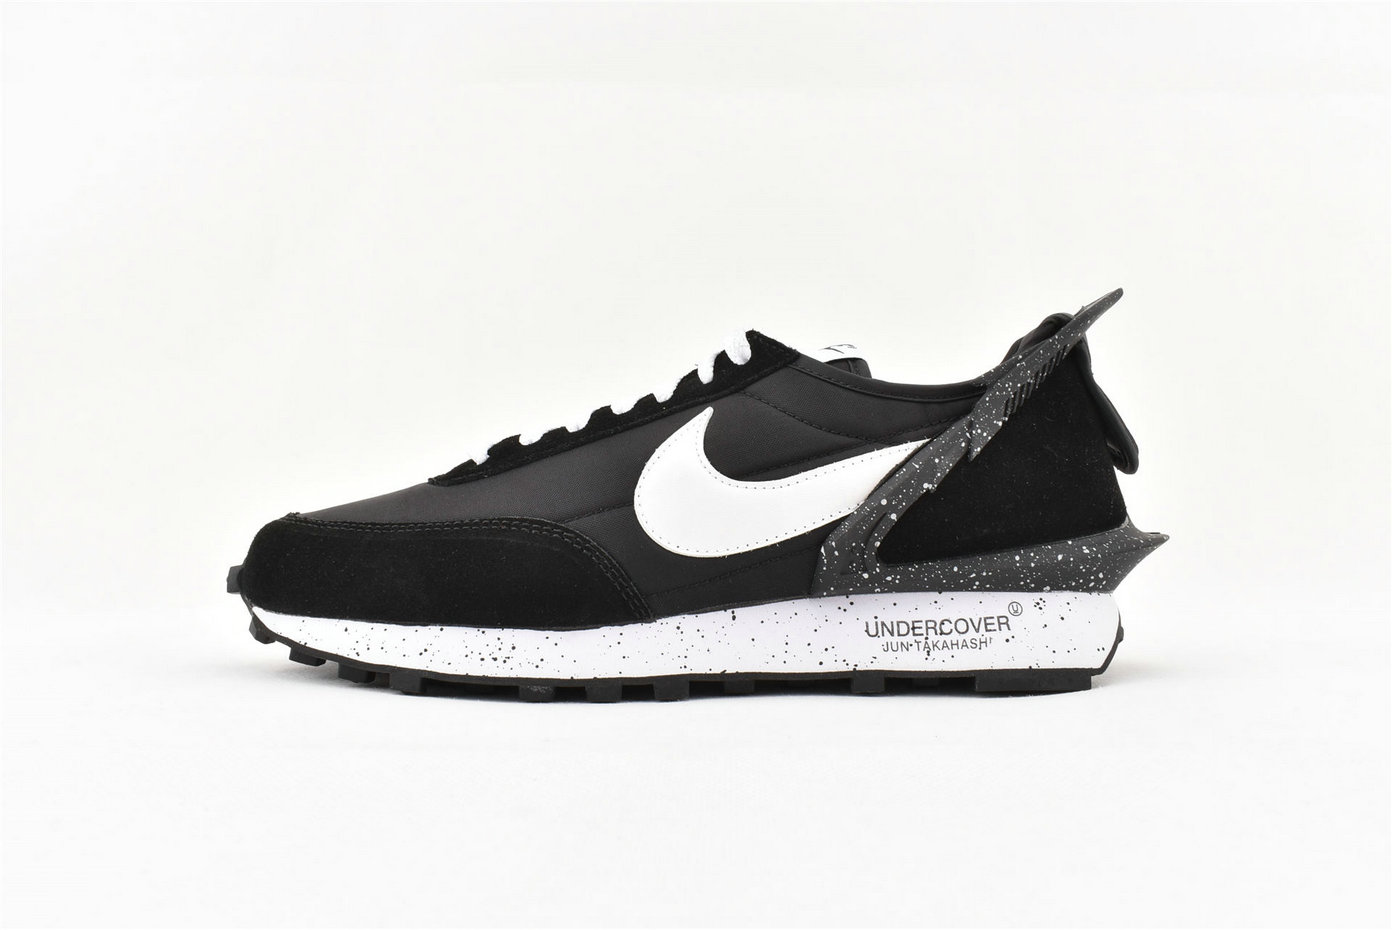 Where To Buy Sacai x Nike LDV Waffle Daybreak Black White AA6853-001